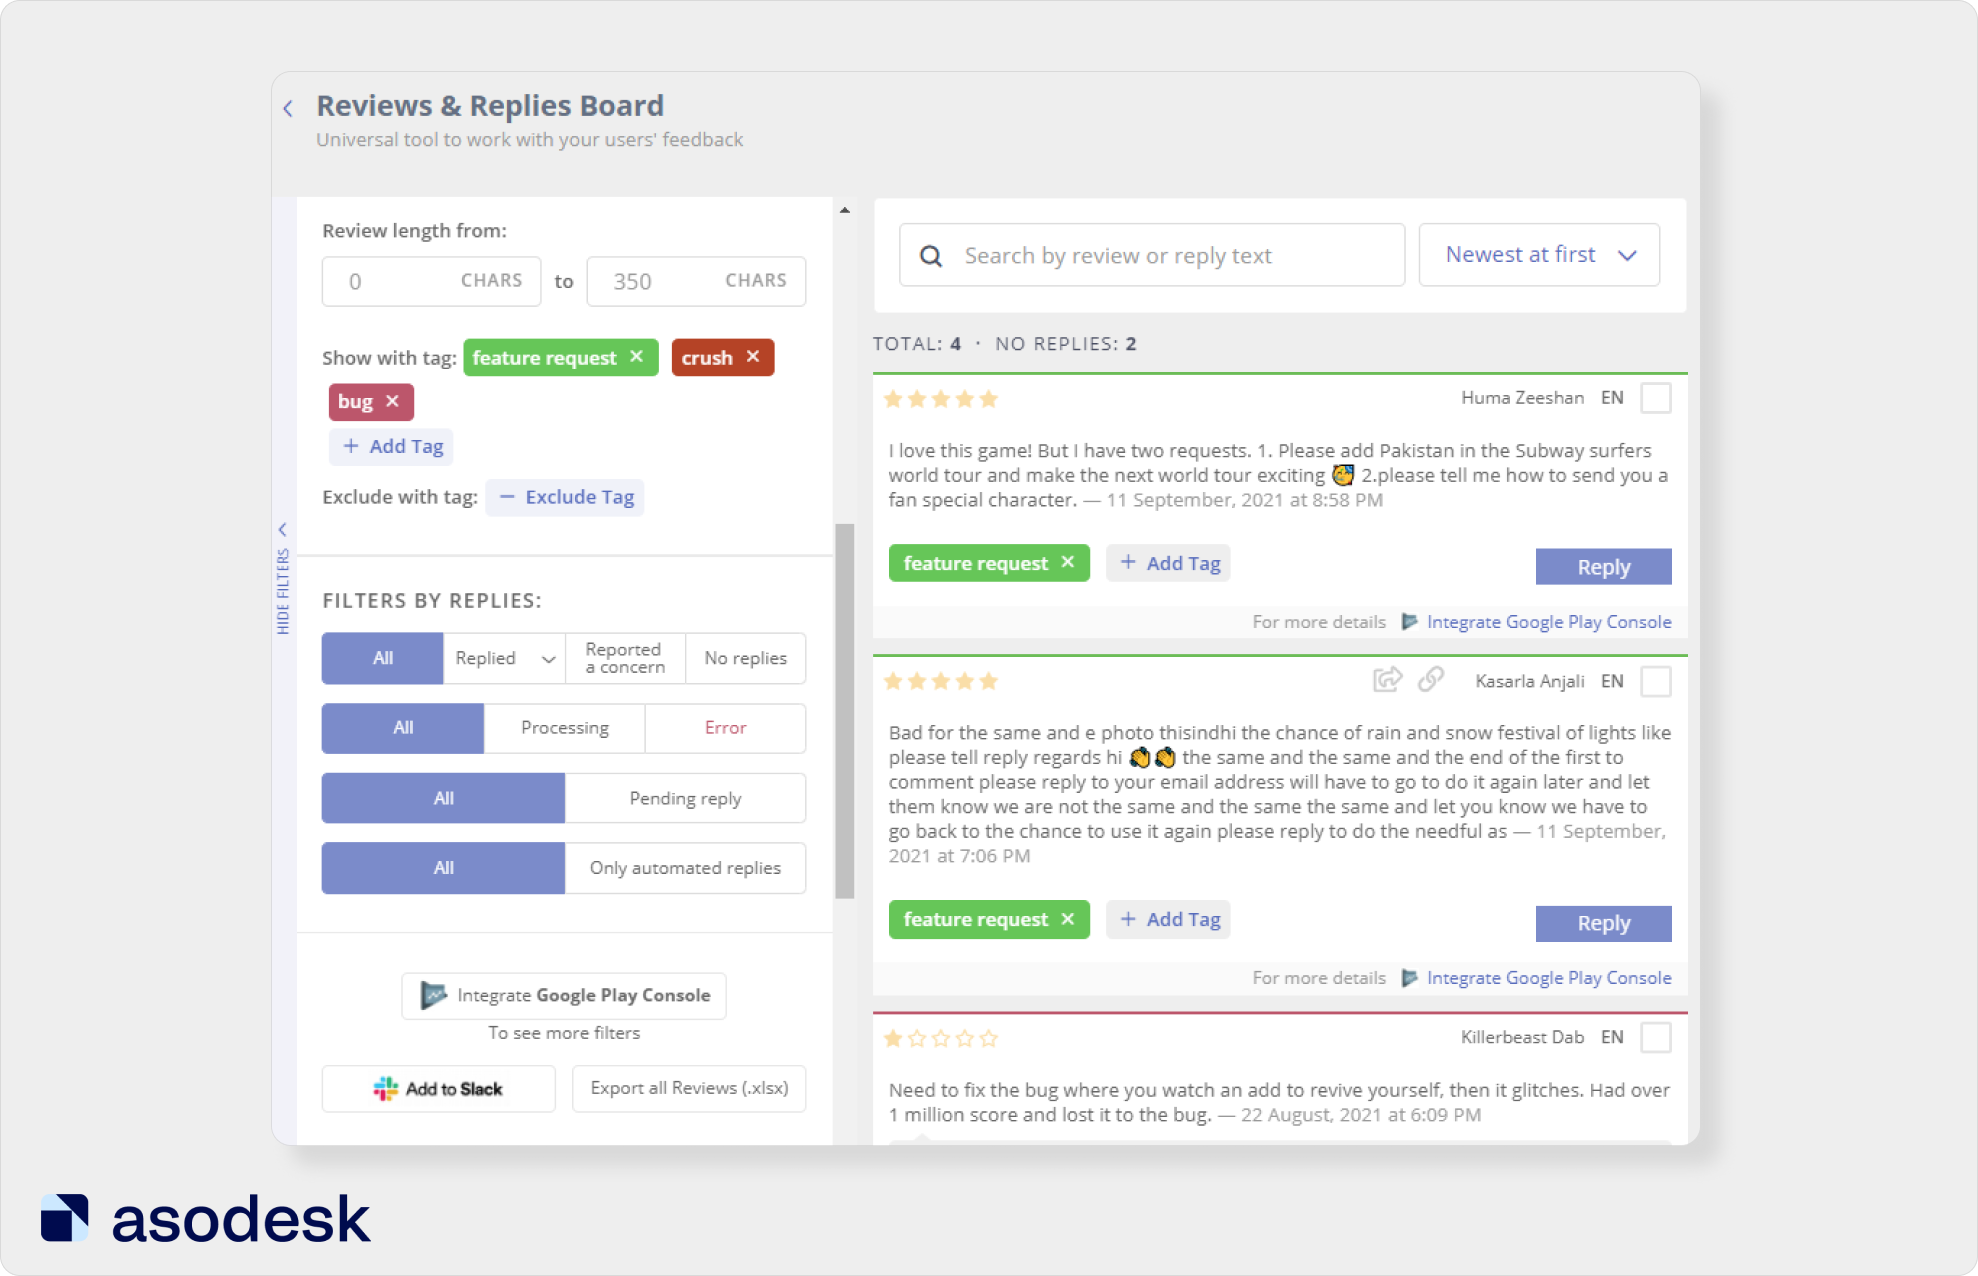 In Reviews & Replies Board you can choose tags for reviews